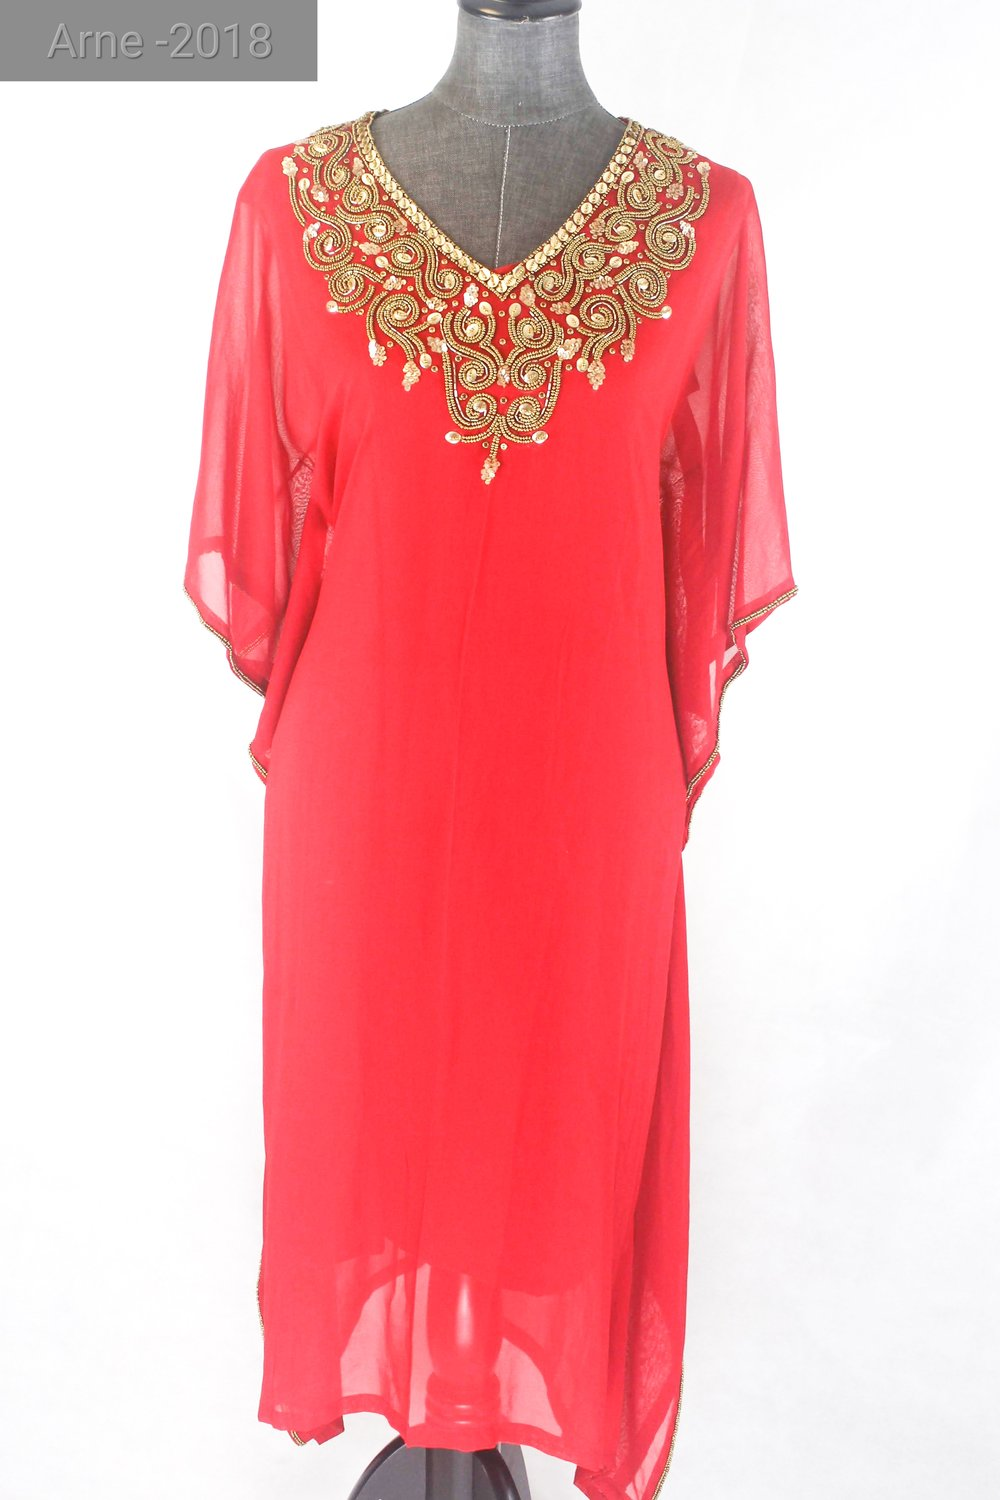 Kaftan - This designer piece of Top can be paired with a variety of options